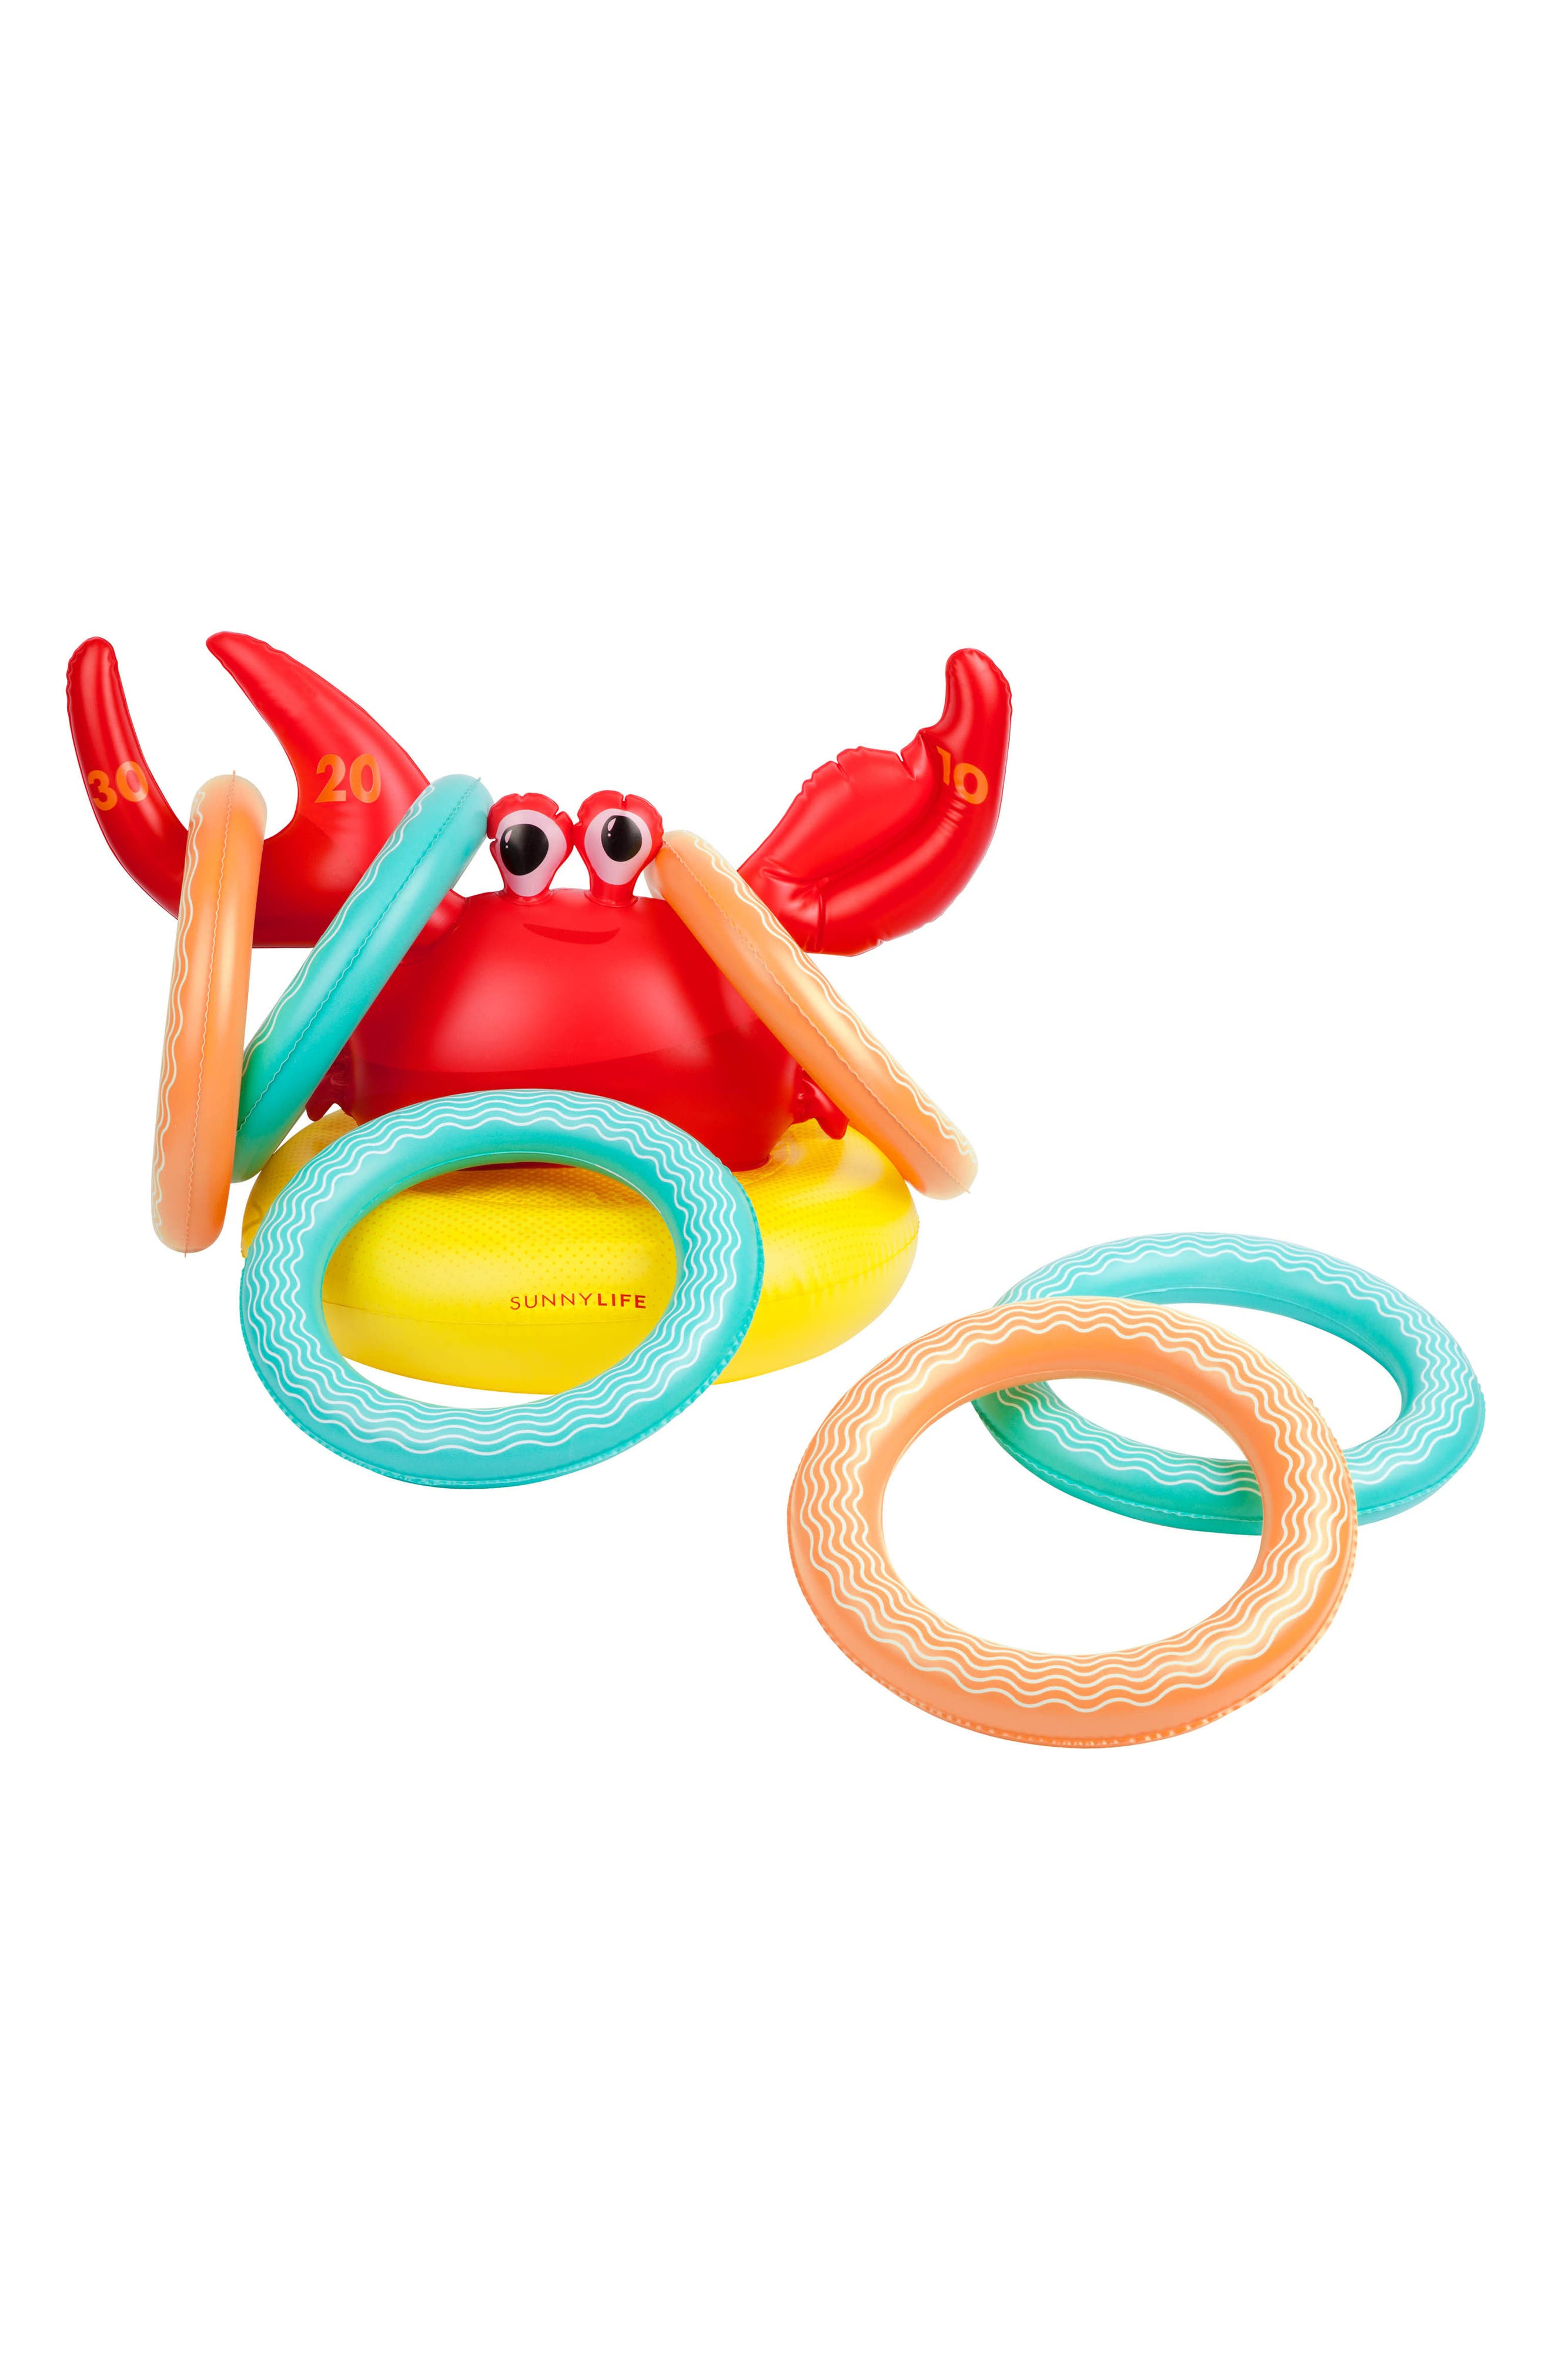 Inflatable Crab 7-Piece Ring Toss Game,                             Alternate thumbnail 4, color,                             600